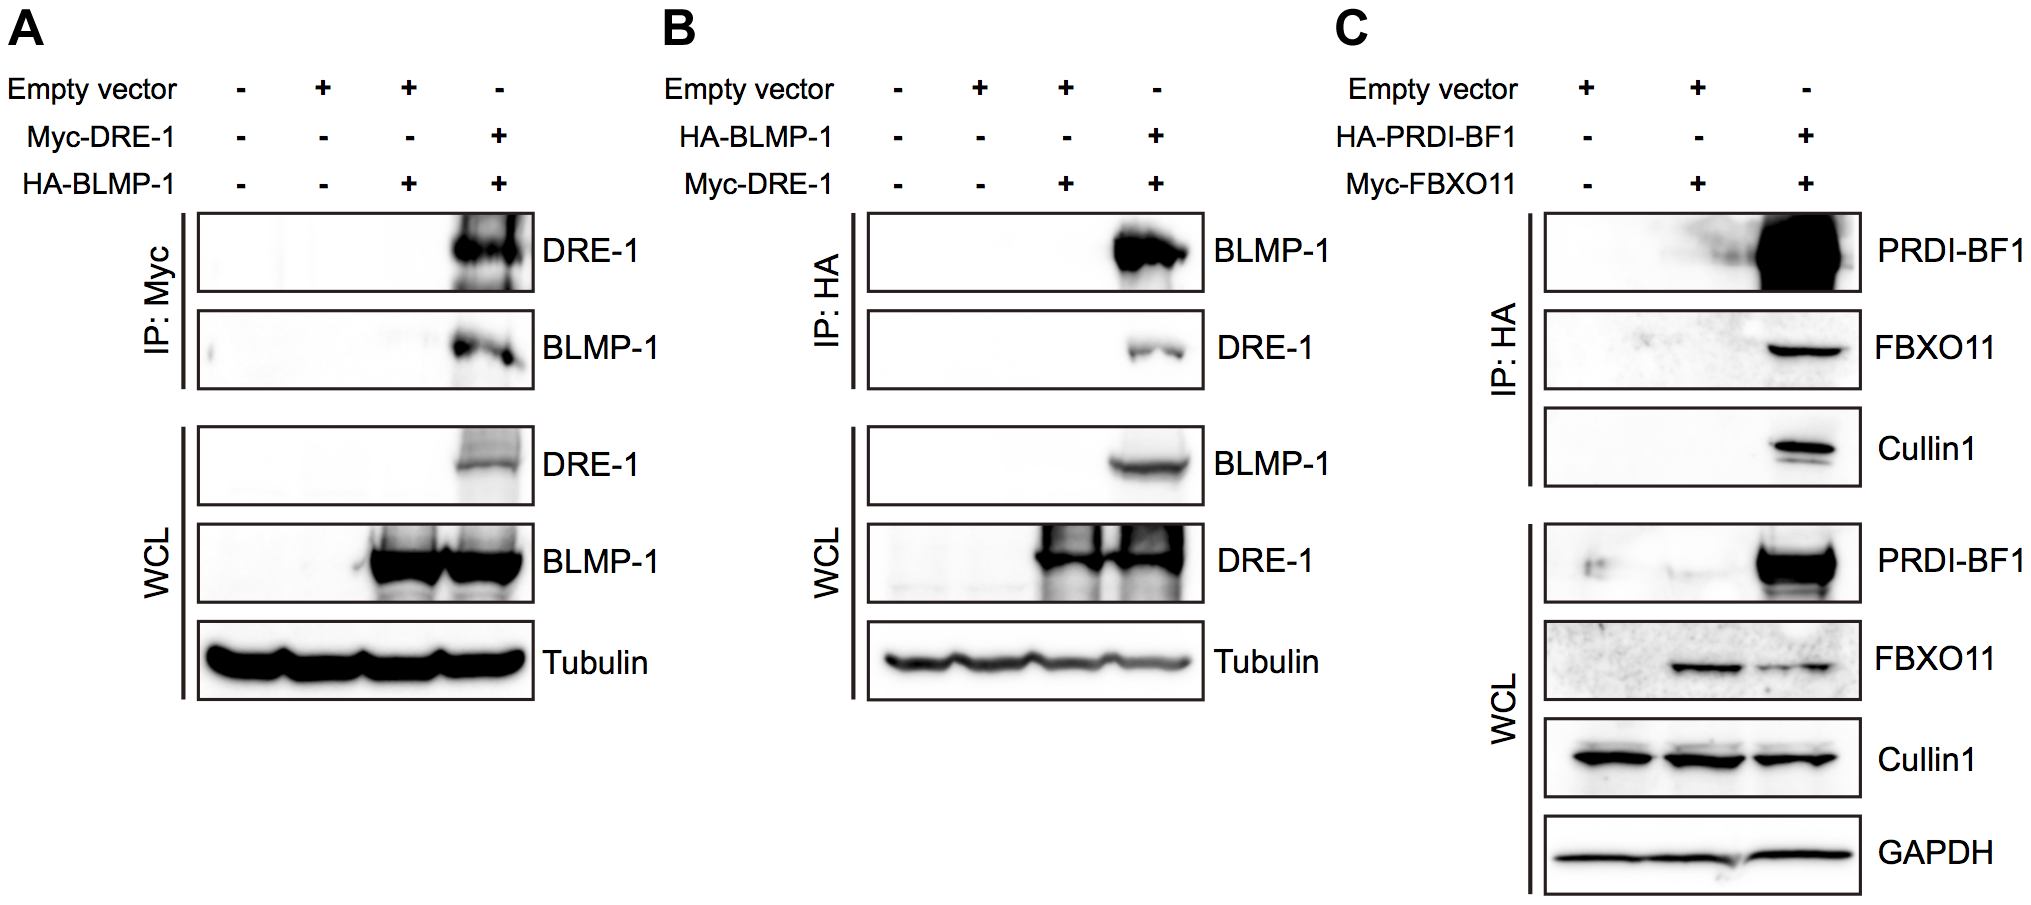 BLMP-1 and DRE-1 are co-immunoprecipitated in human cell cultures, as are their human orthologs PRDI-BF1 and FBXO11.